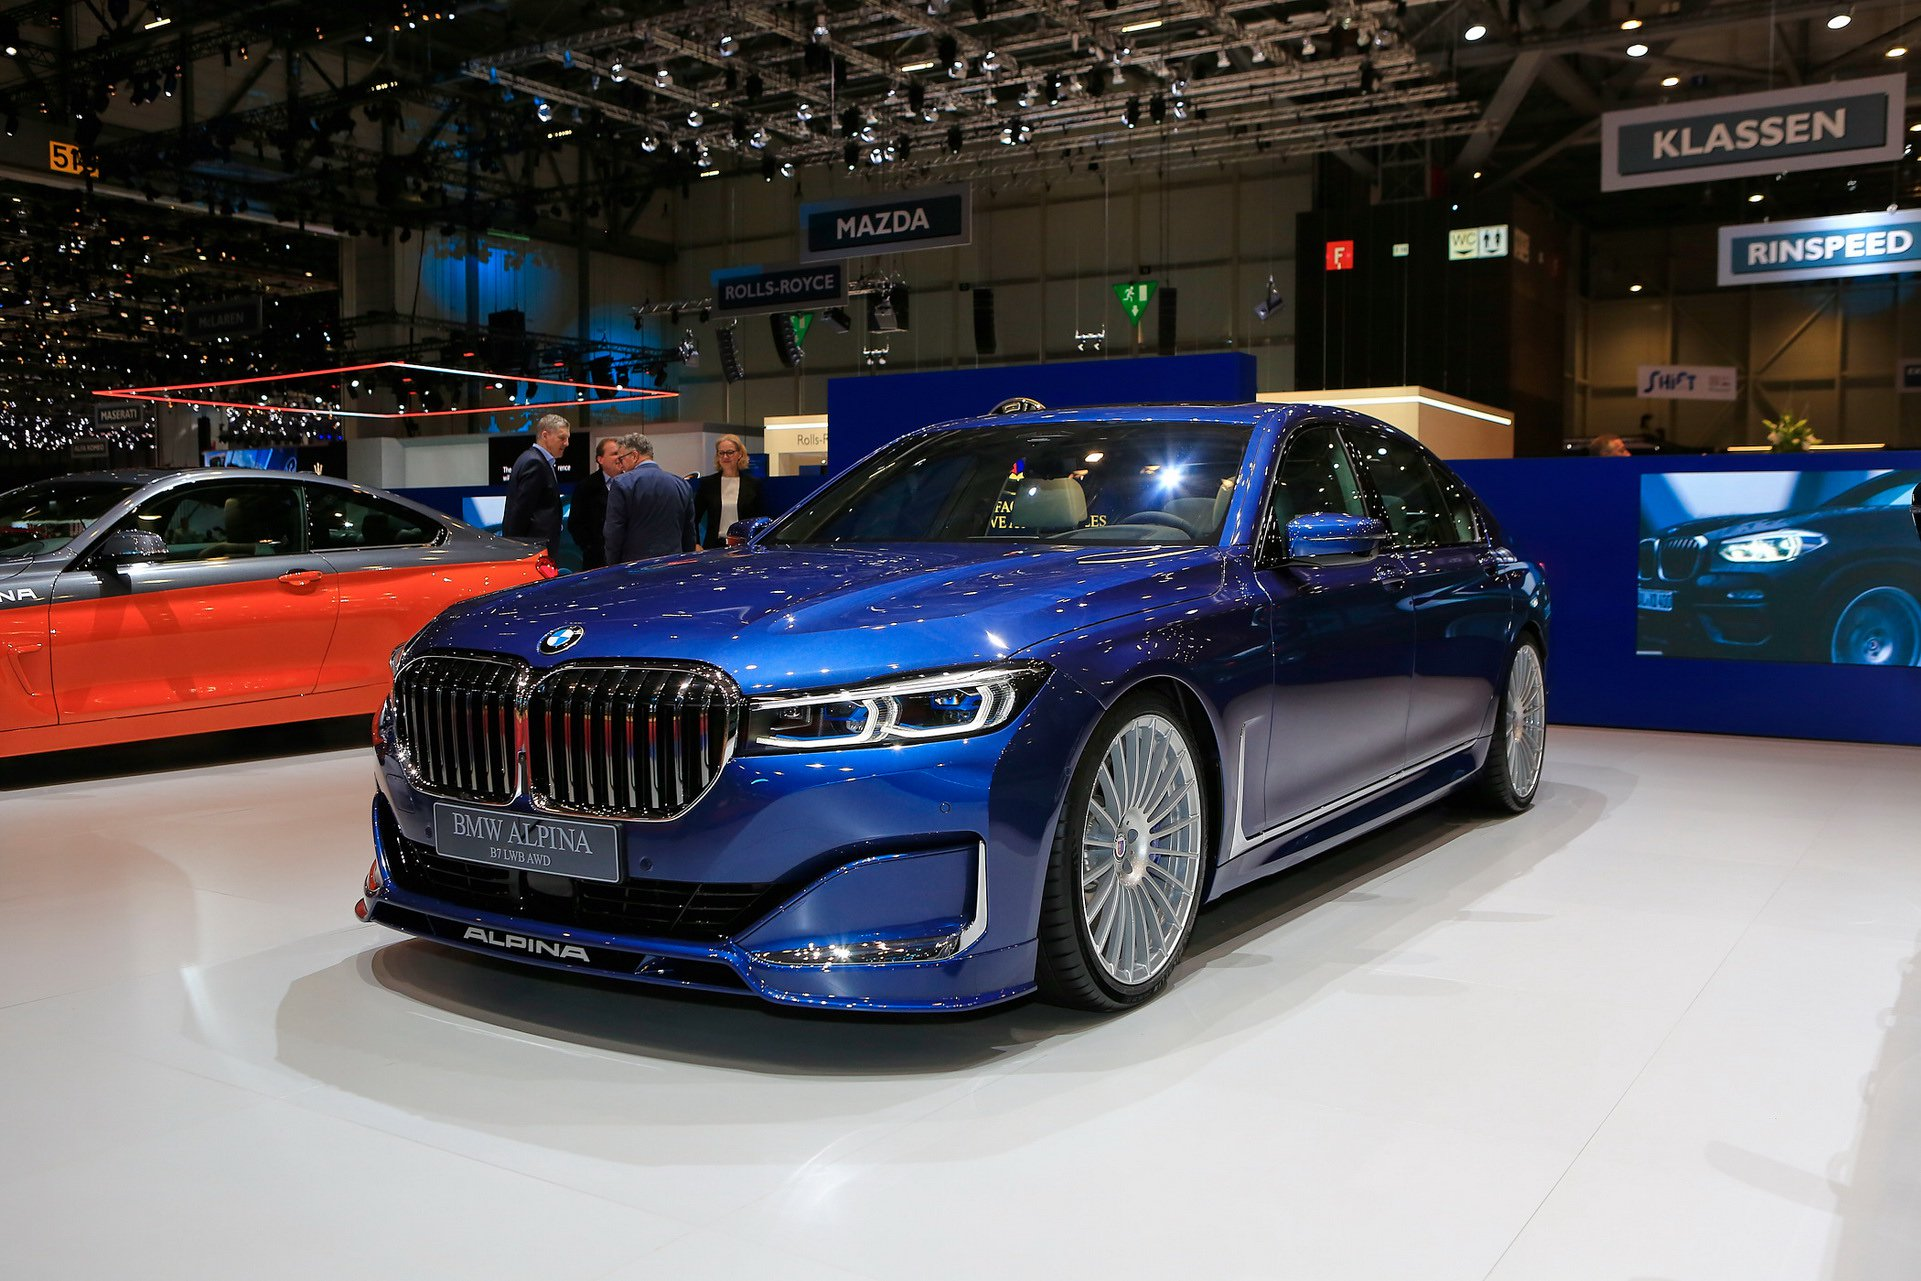 Alpina has taken the wraps off its updated flagship sedan/saloon model called the 2020 B7 xDrive